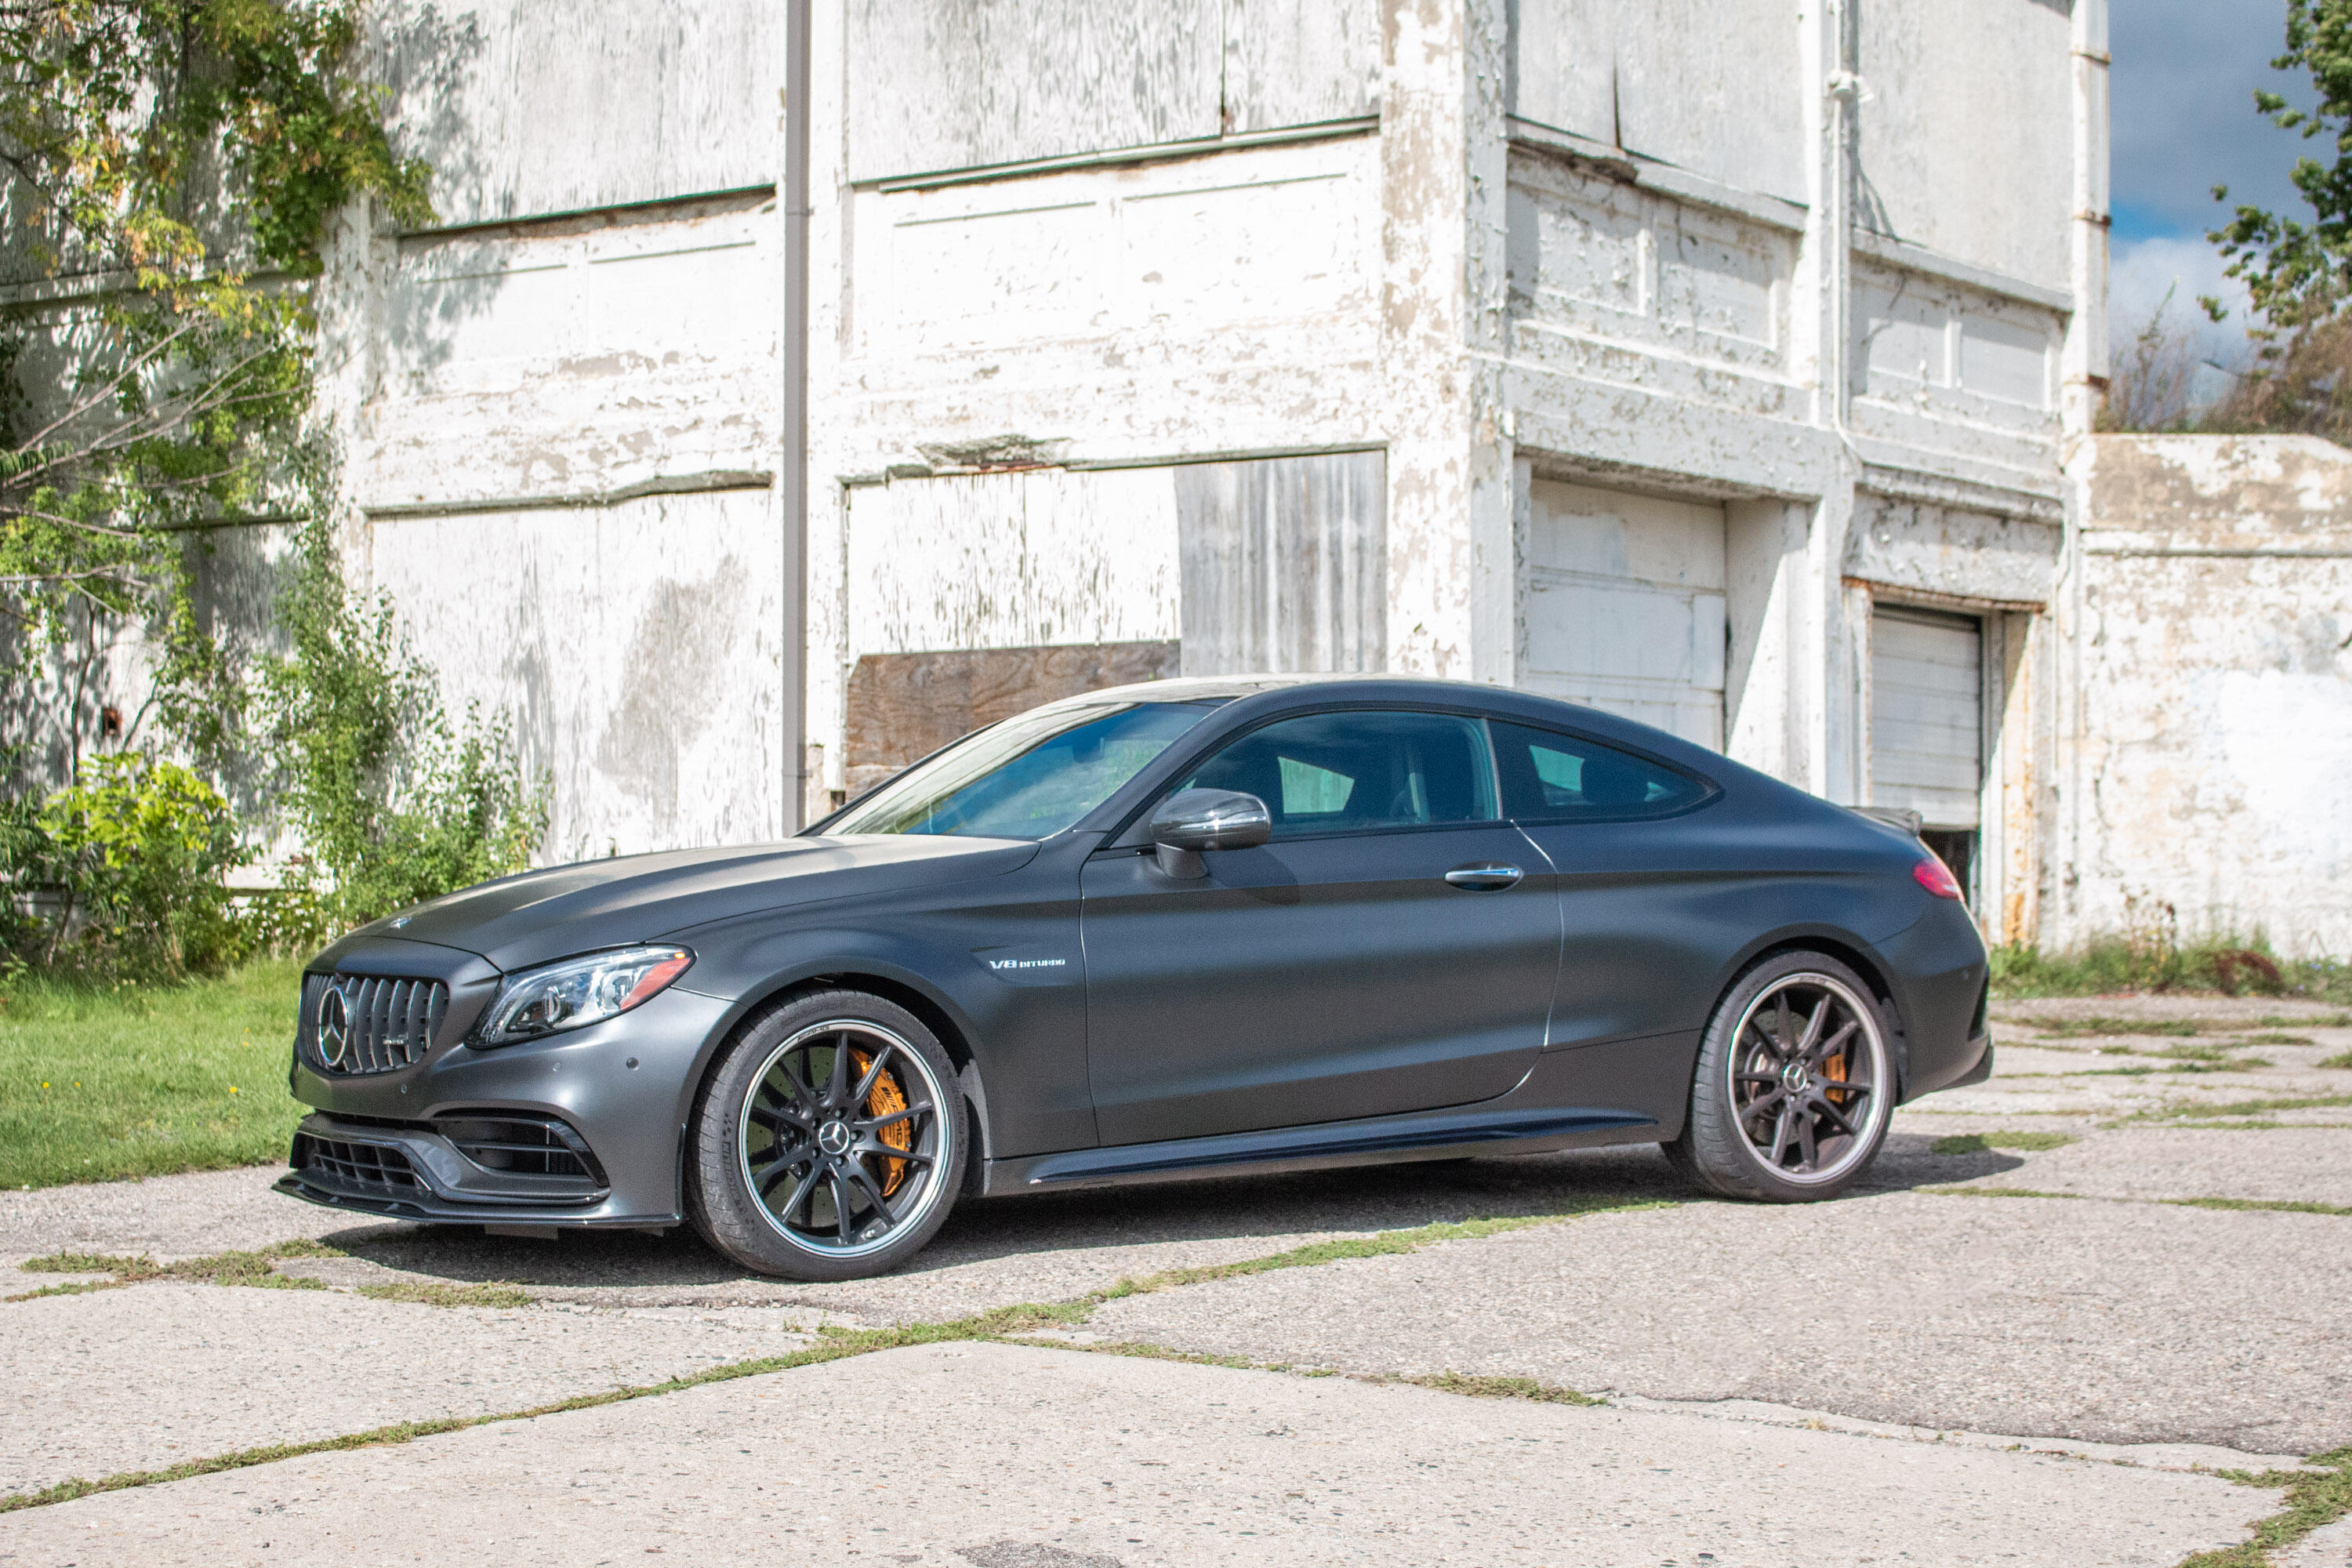 2020-mercedes-amg-c63-s-coupe-65